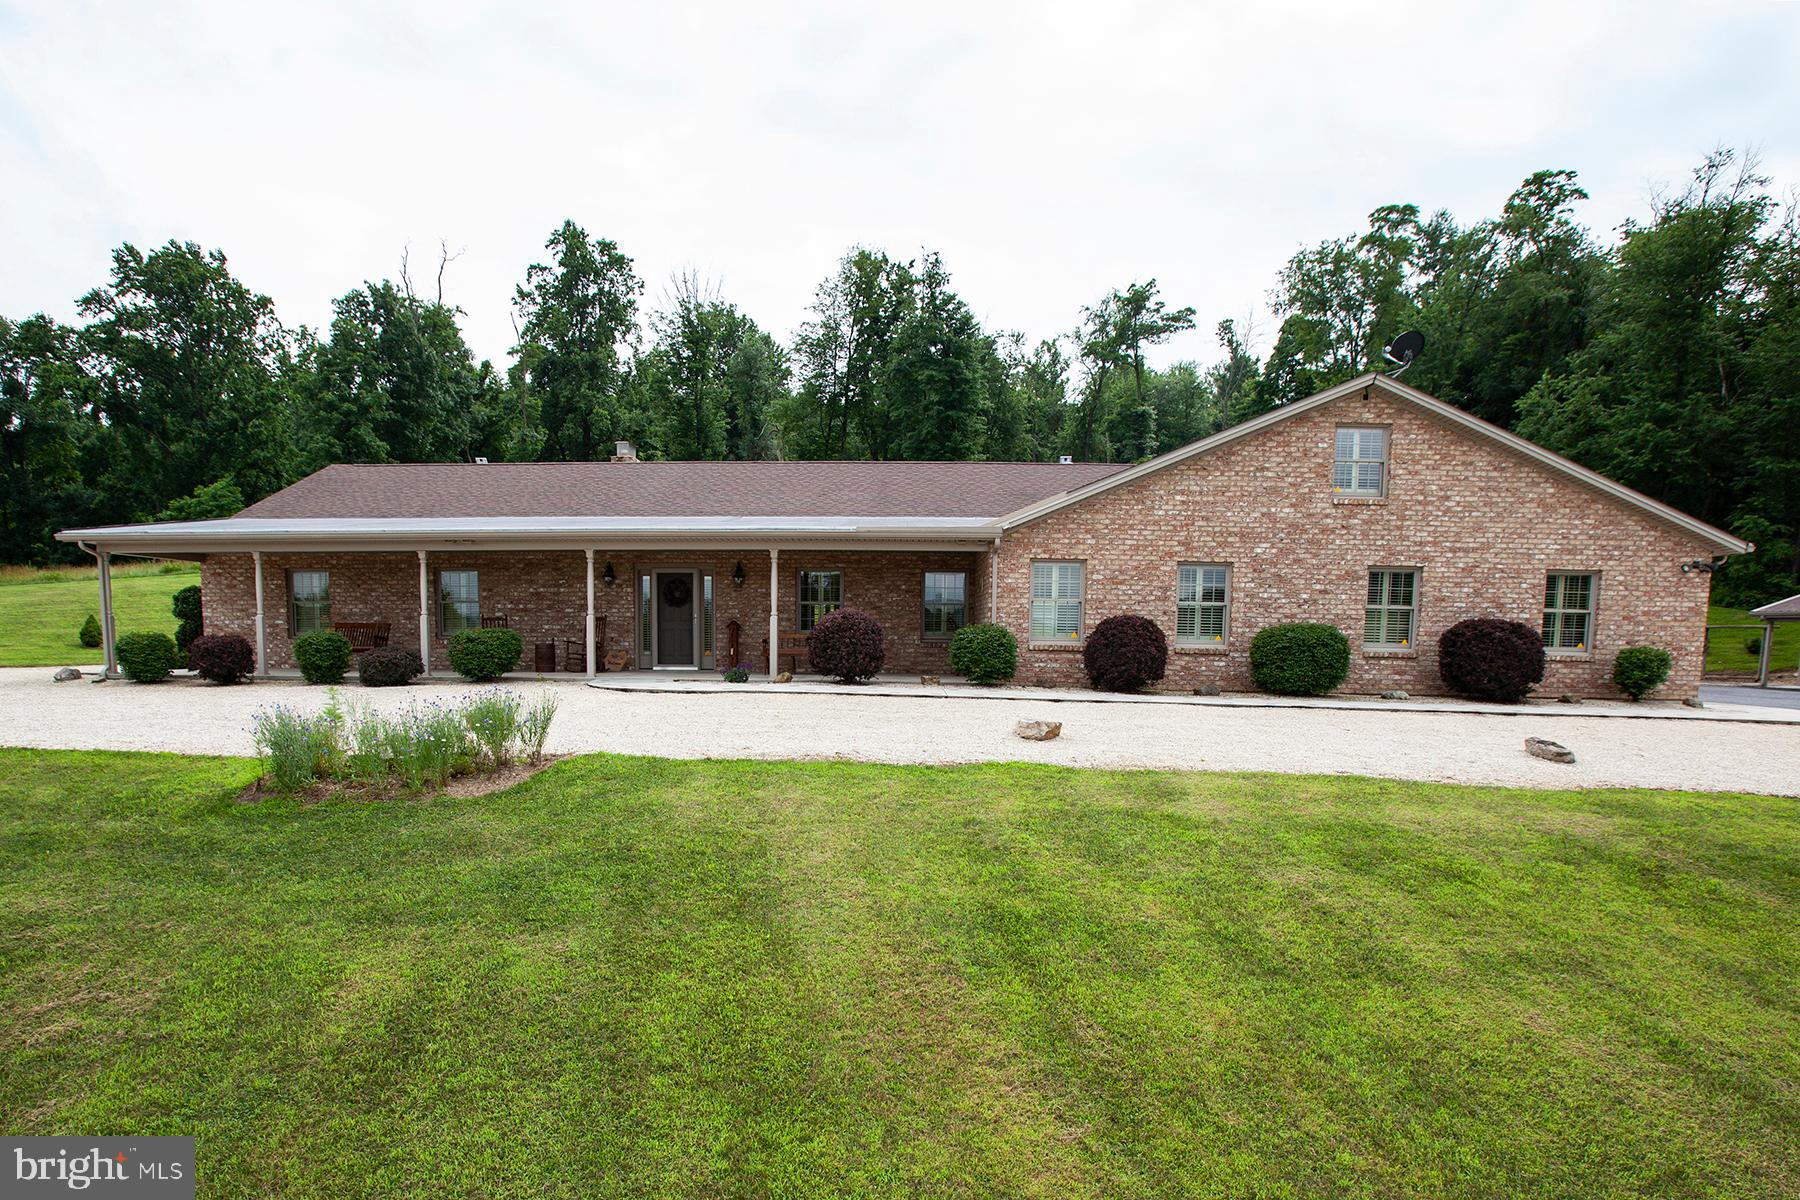 464 SHEAFFERS VALLEY ROAD, LANDISBURG, PA 17040